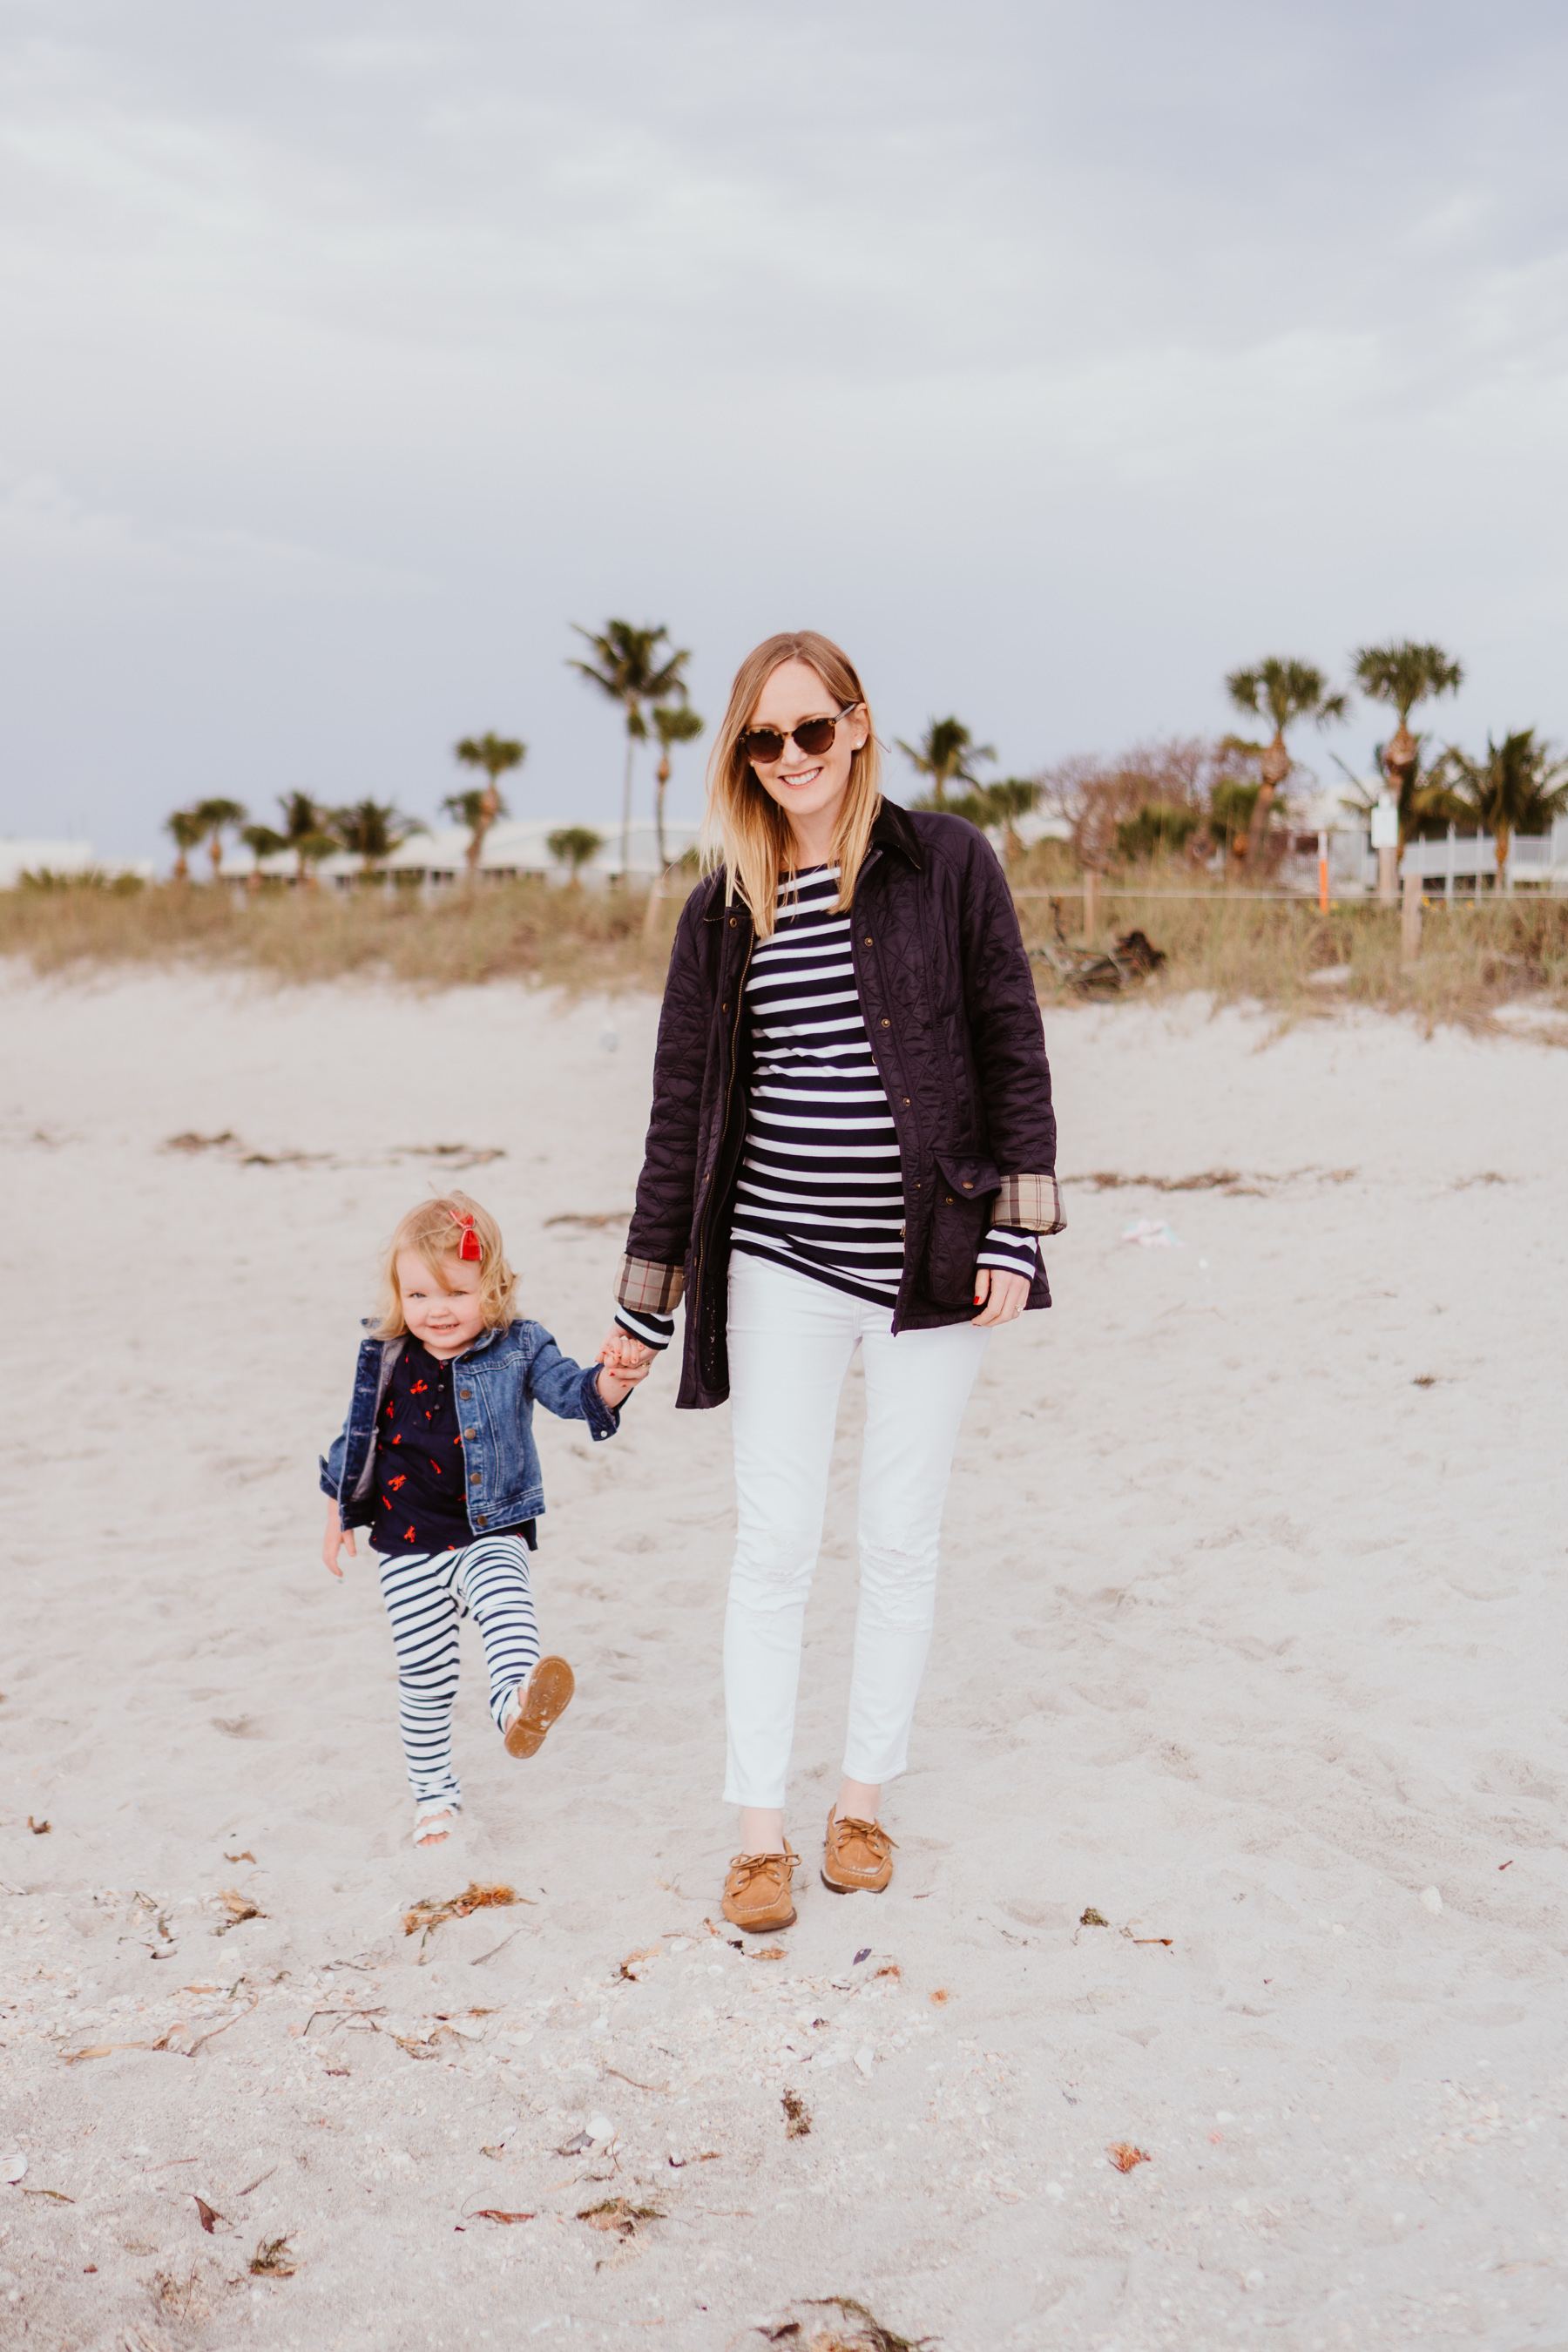 White Skinny Maternity Jeans / Striped Tee (Maternity version here.) / Barbour Jacket / Sperry Boat Shoes / Emma's Outfit Details here